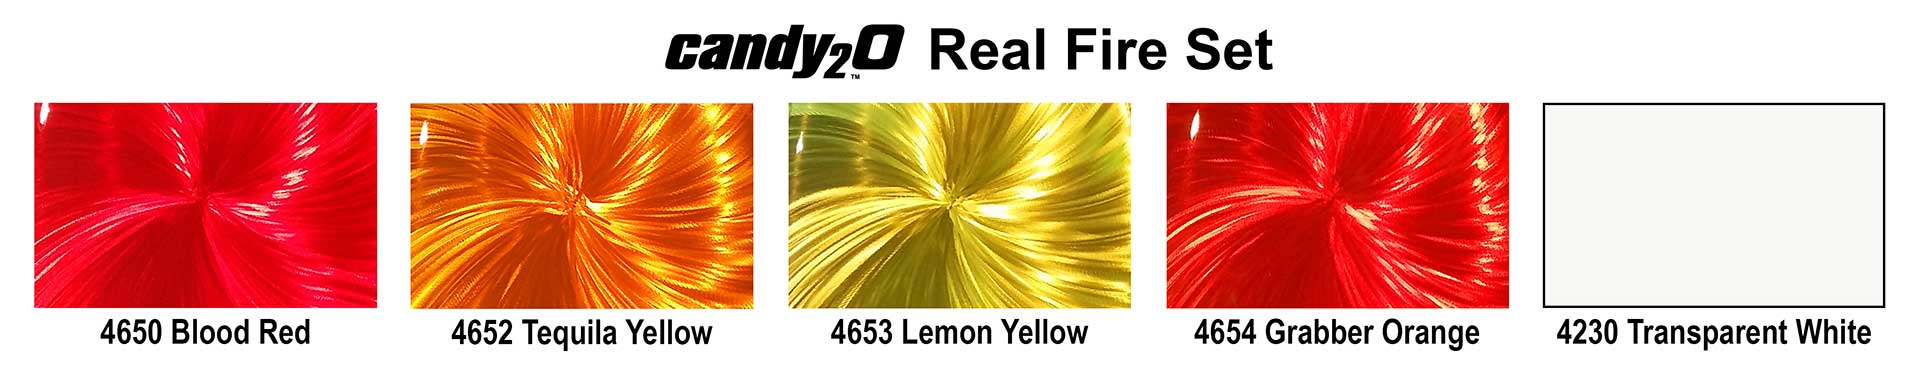 4970 Real Fire Set color chart